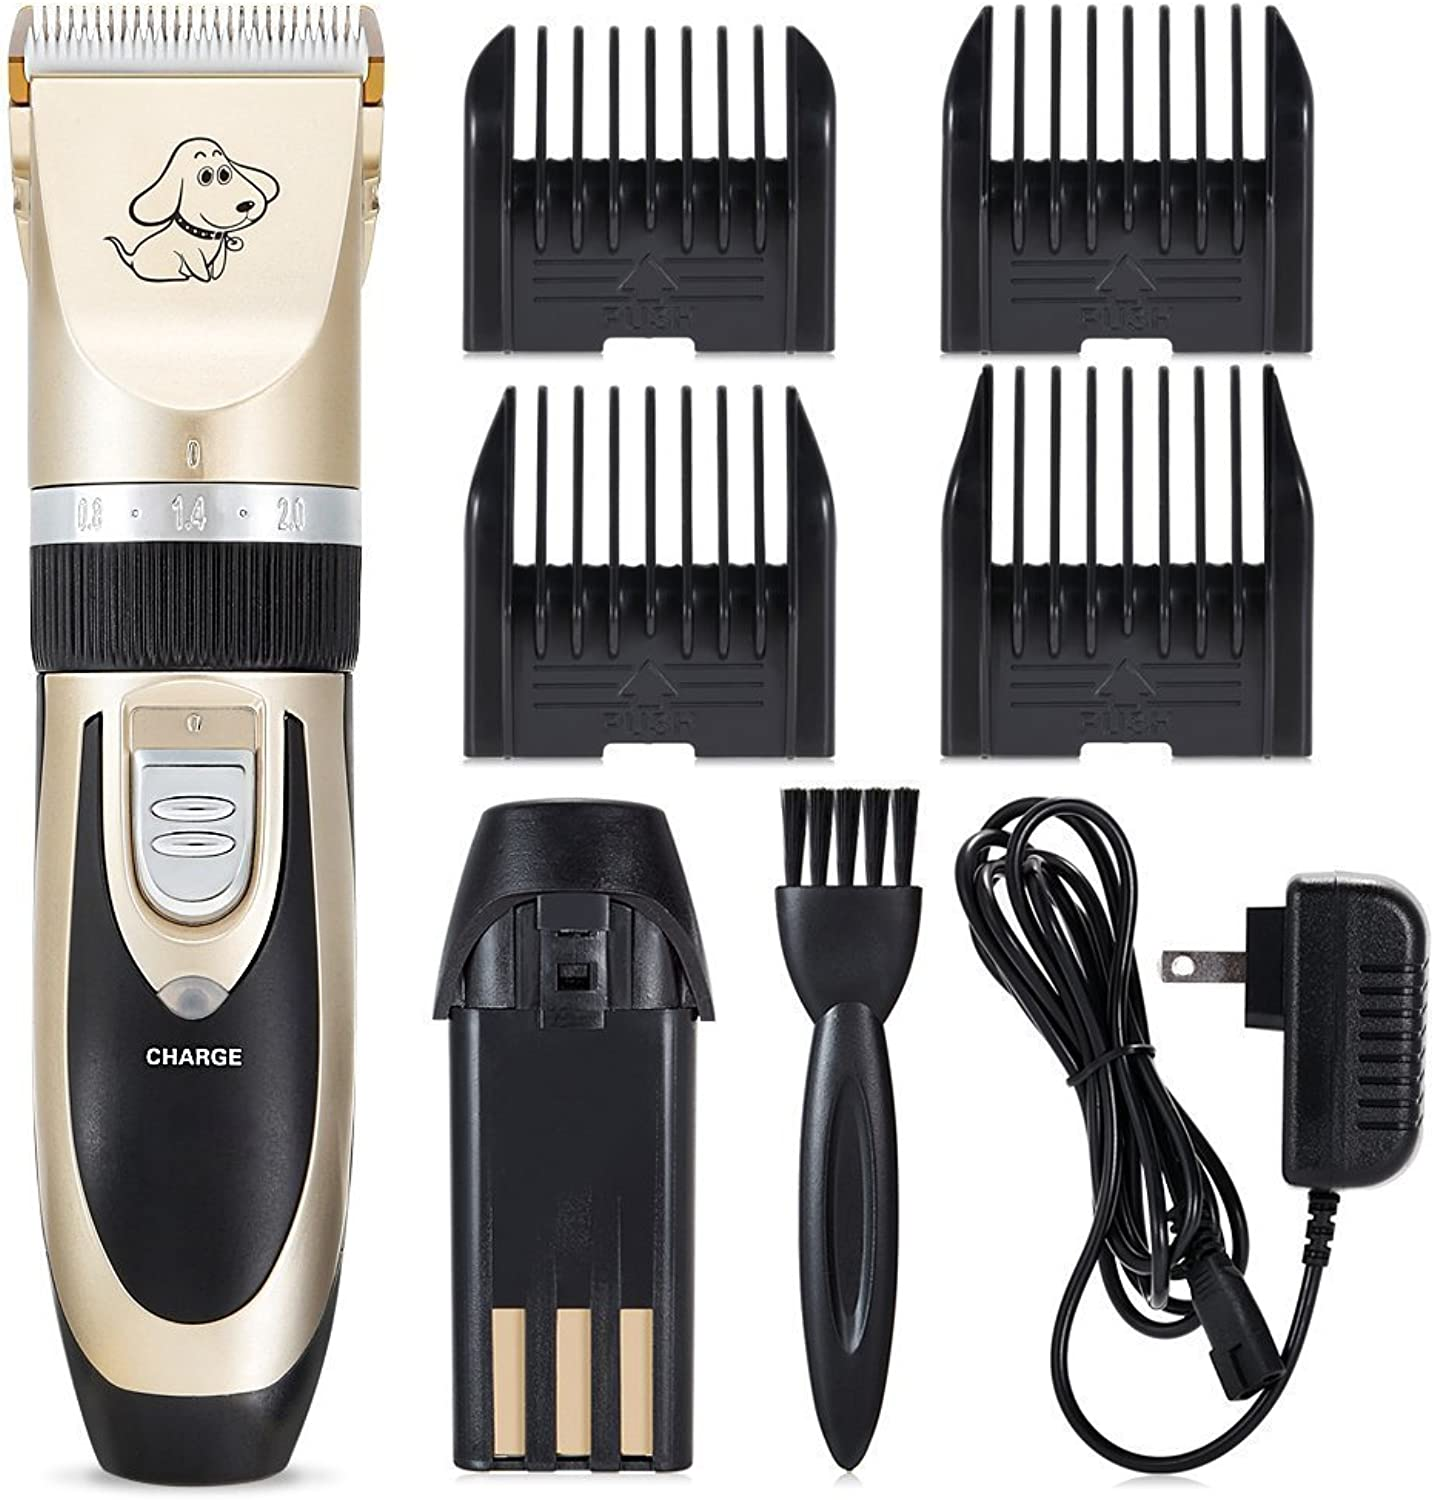 FIVE STAR Pet Grooming Clippers Dogs and Cats Electric Clippers Grooming Trimming Kit Set Low Noise Rechargeable Cordless Clippers Grooming Trimming Kit Set for Large Medium Small Dogs and Cats